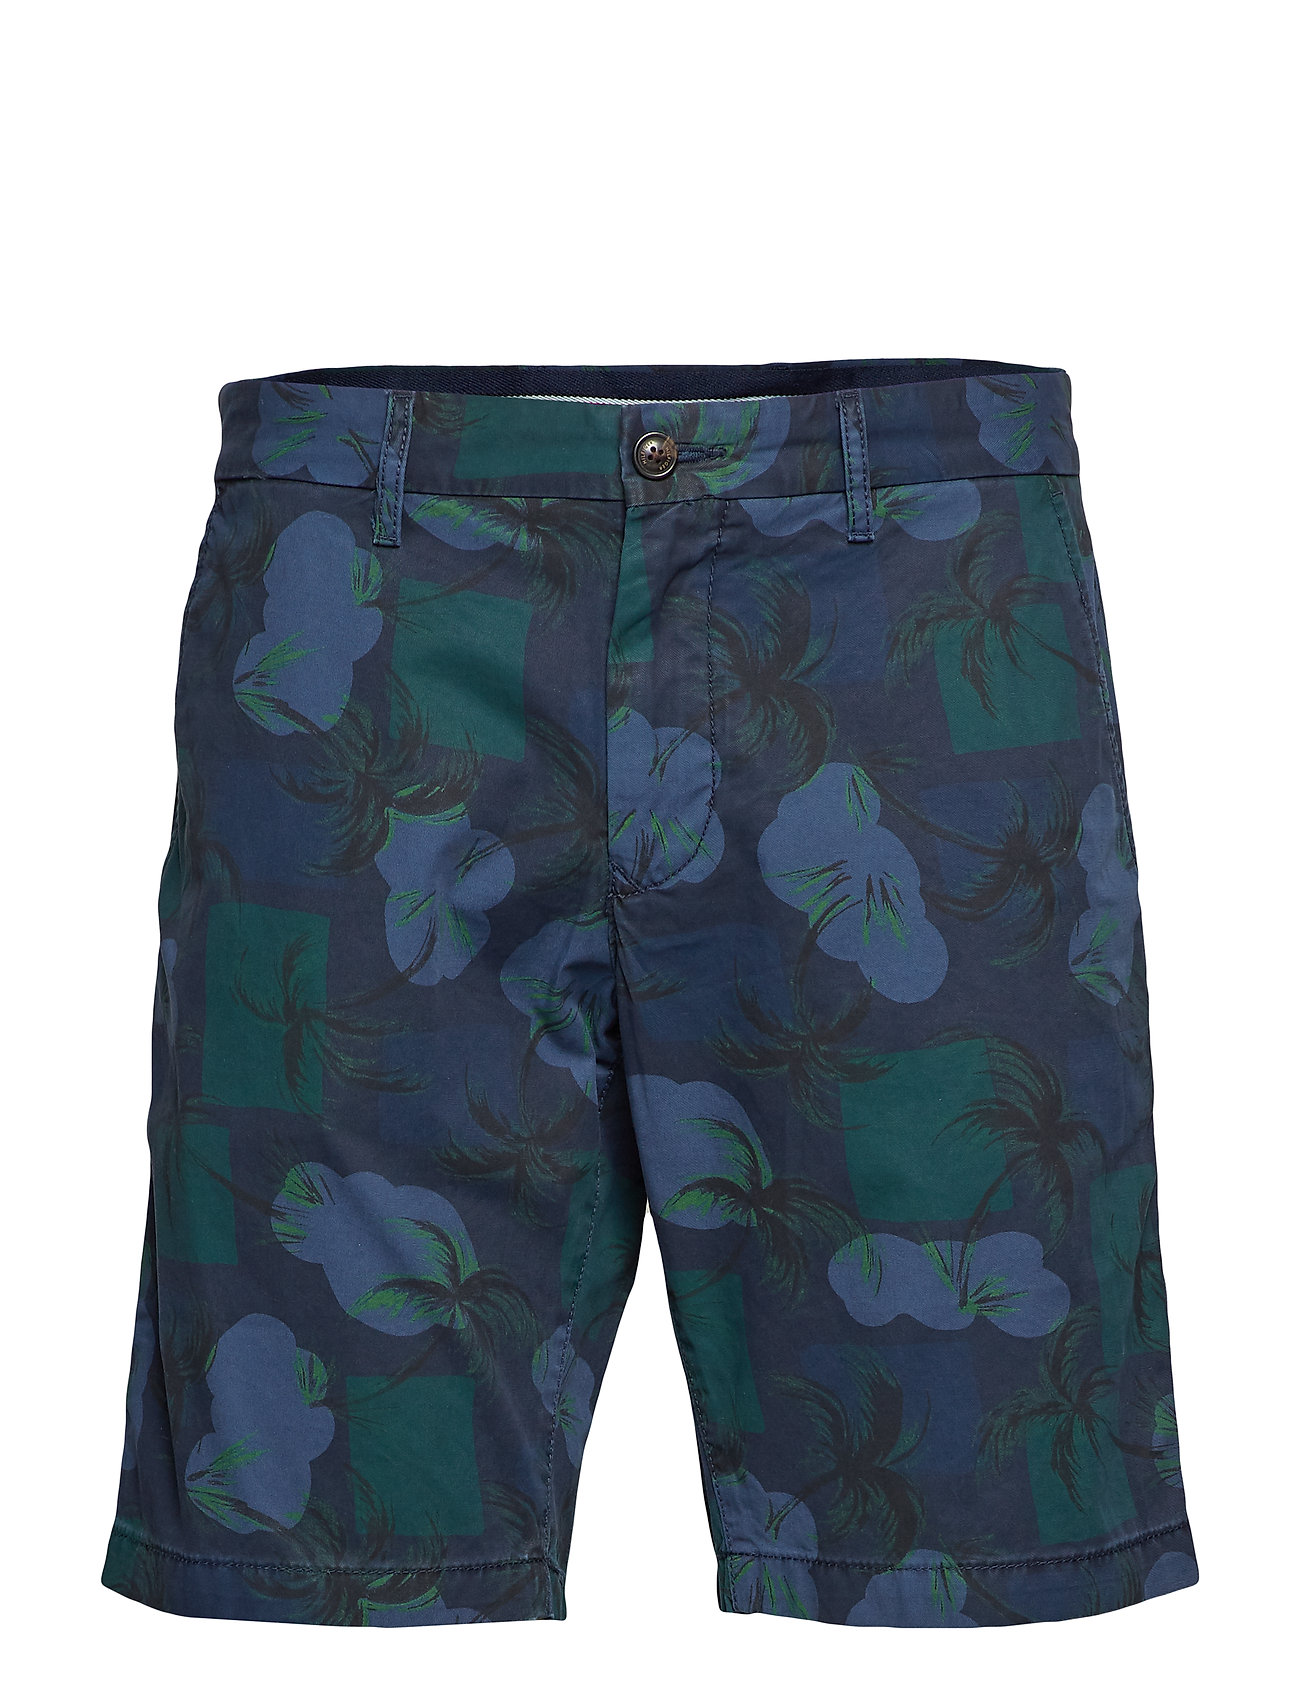 Tommy Hilfiger BROOKLYN SHORT LT TWL PALM PRINT - NIGHT SKY